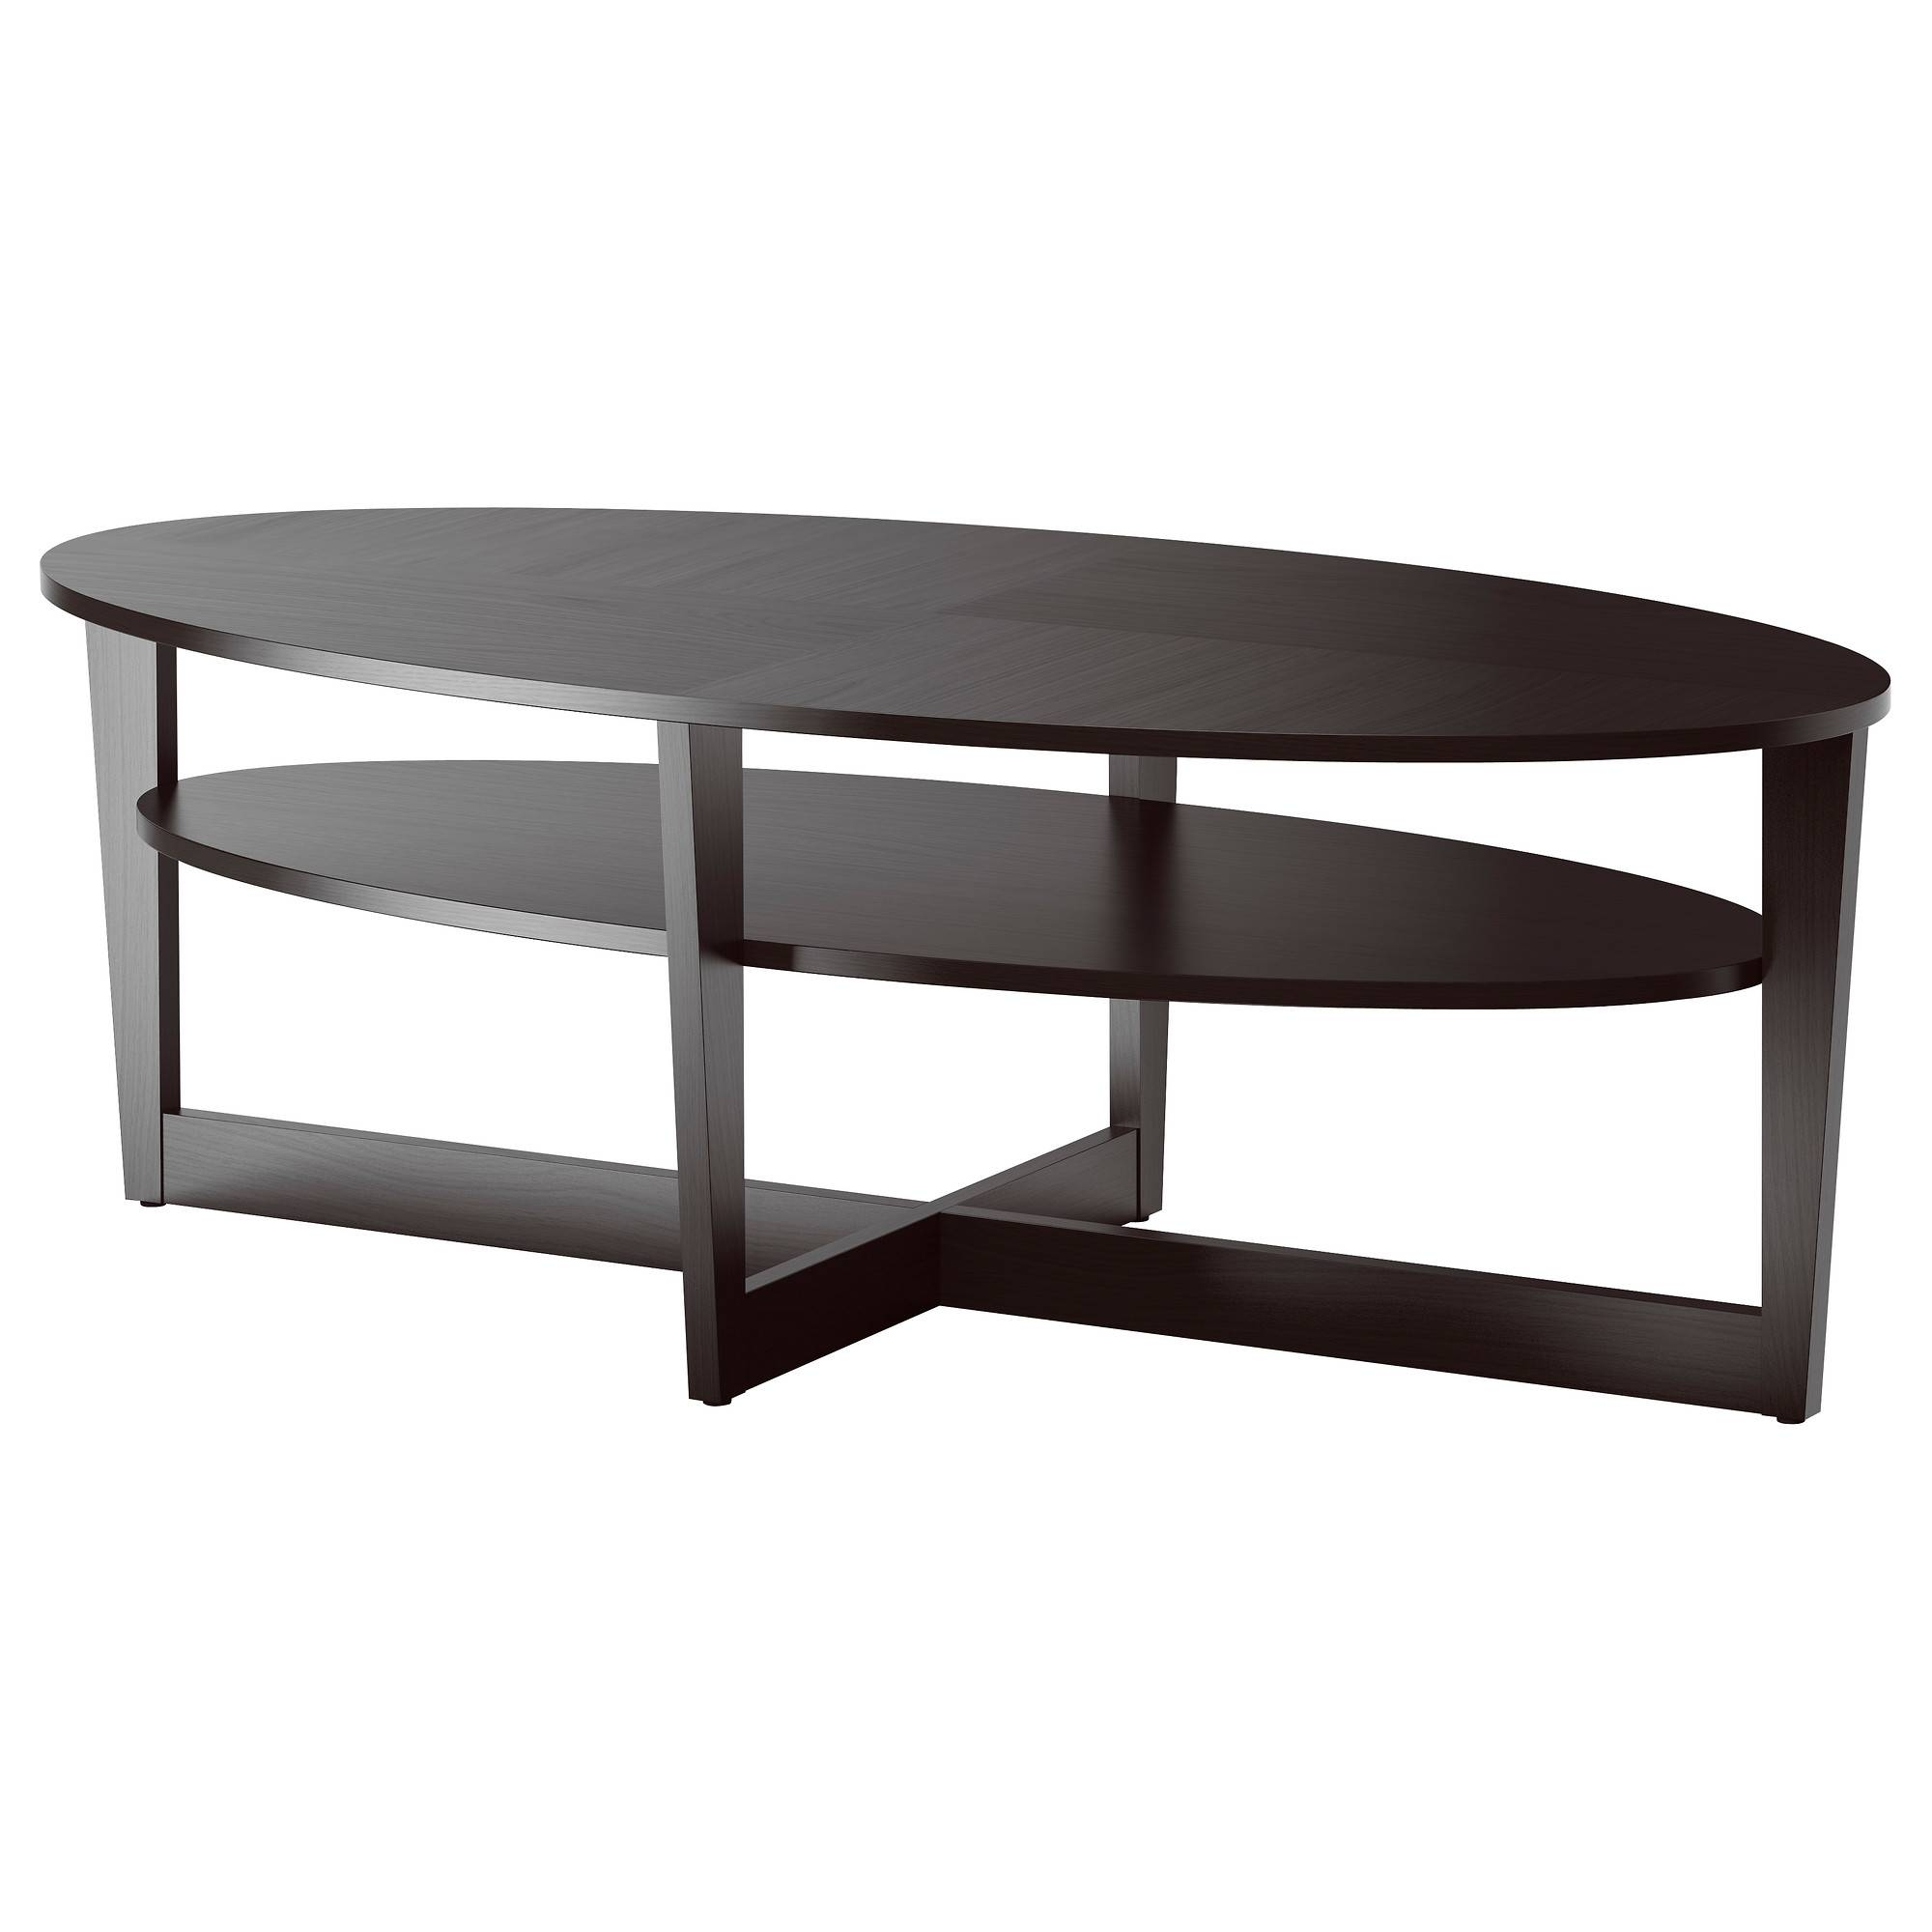 Vejmon Coffee Table - Brown - Ikea intended for Black Oval Coffee Tables (Image 30 of 30)